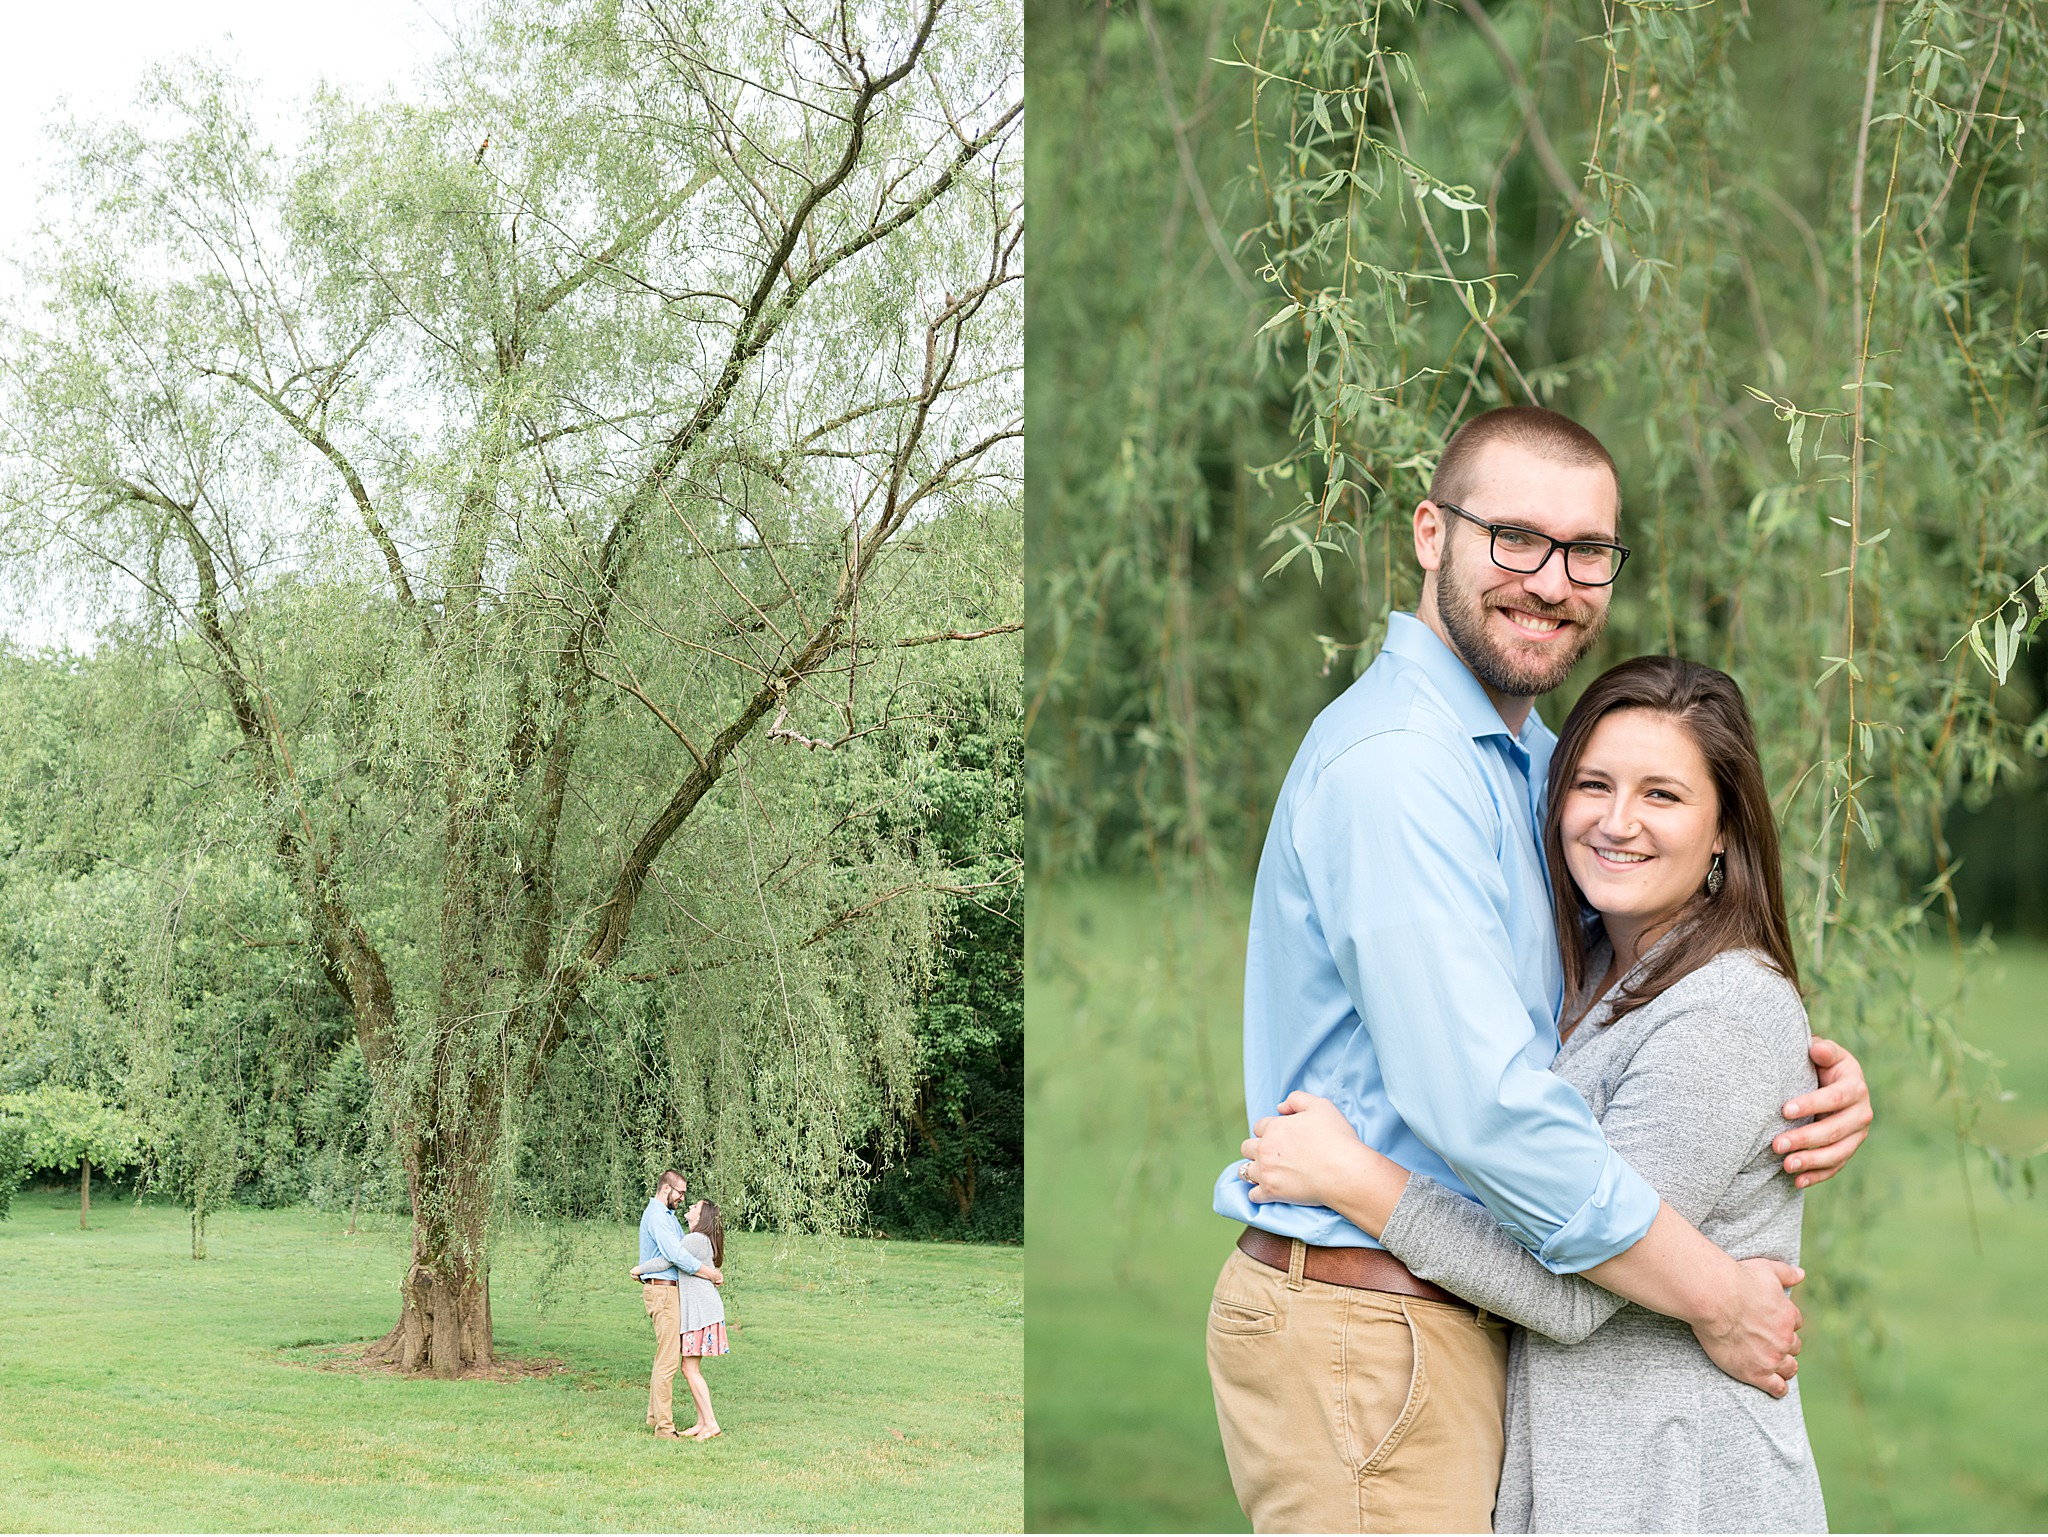 Chiques Park Marietta PA Lancaster Wedding Engagement Photographer_3670.jpg